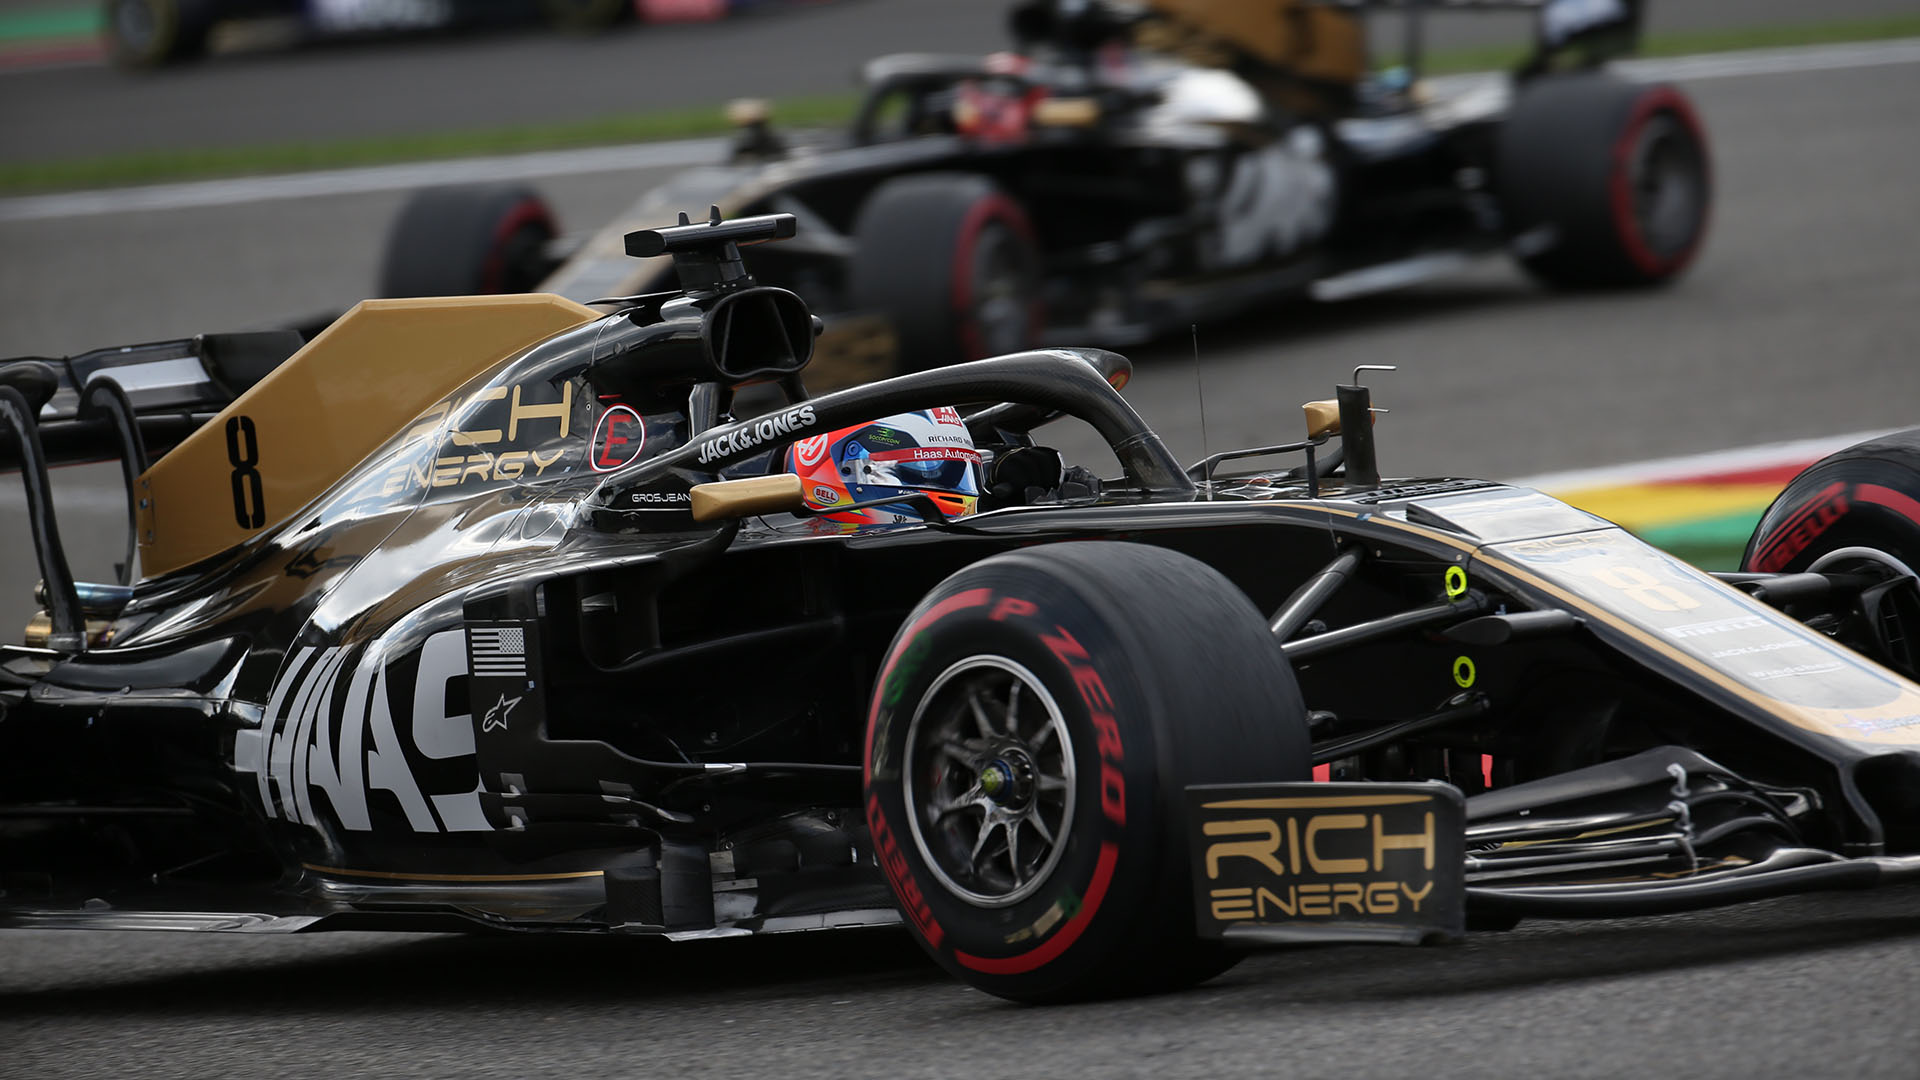 Haas Team2019 F1 Racer Wallpapers: Haas Part Ways With Title Sponsors Rich Energy